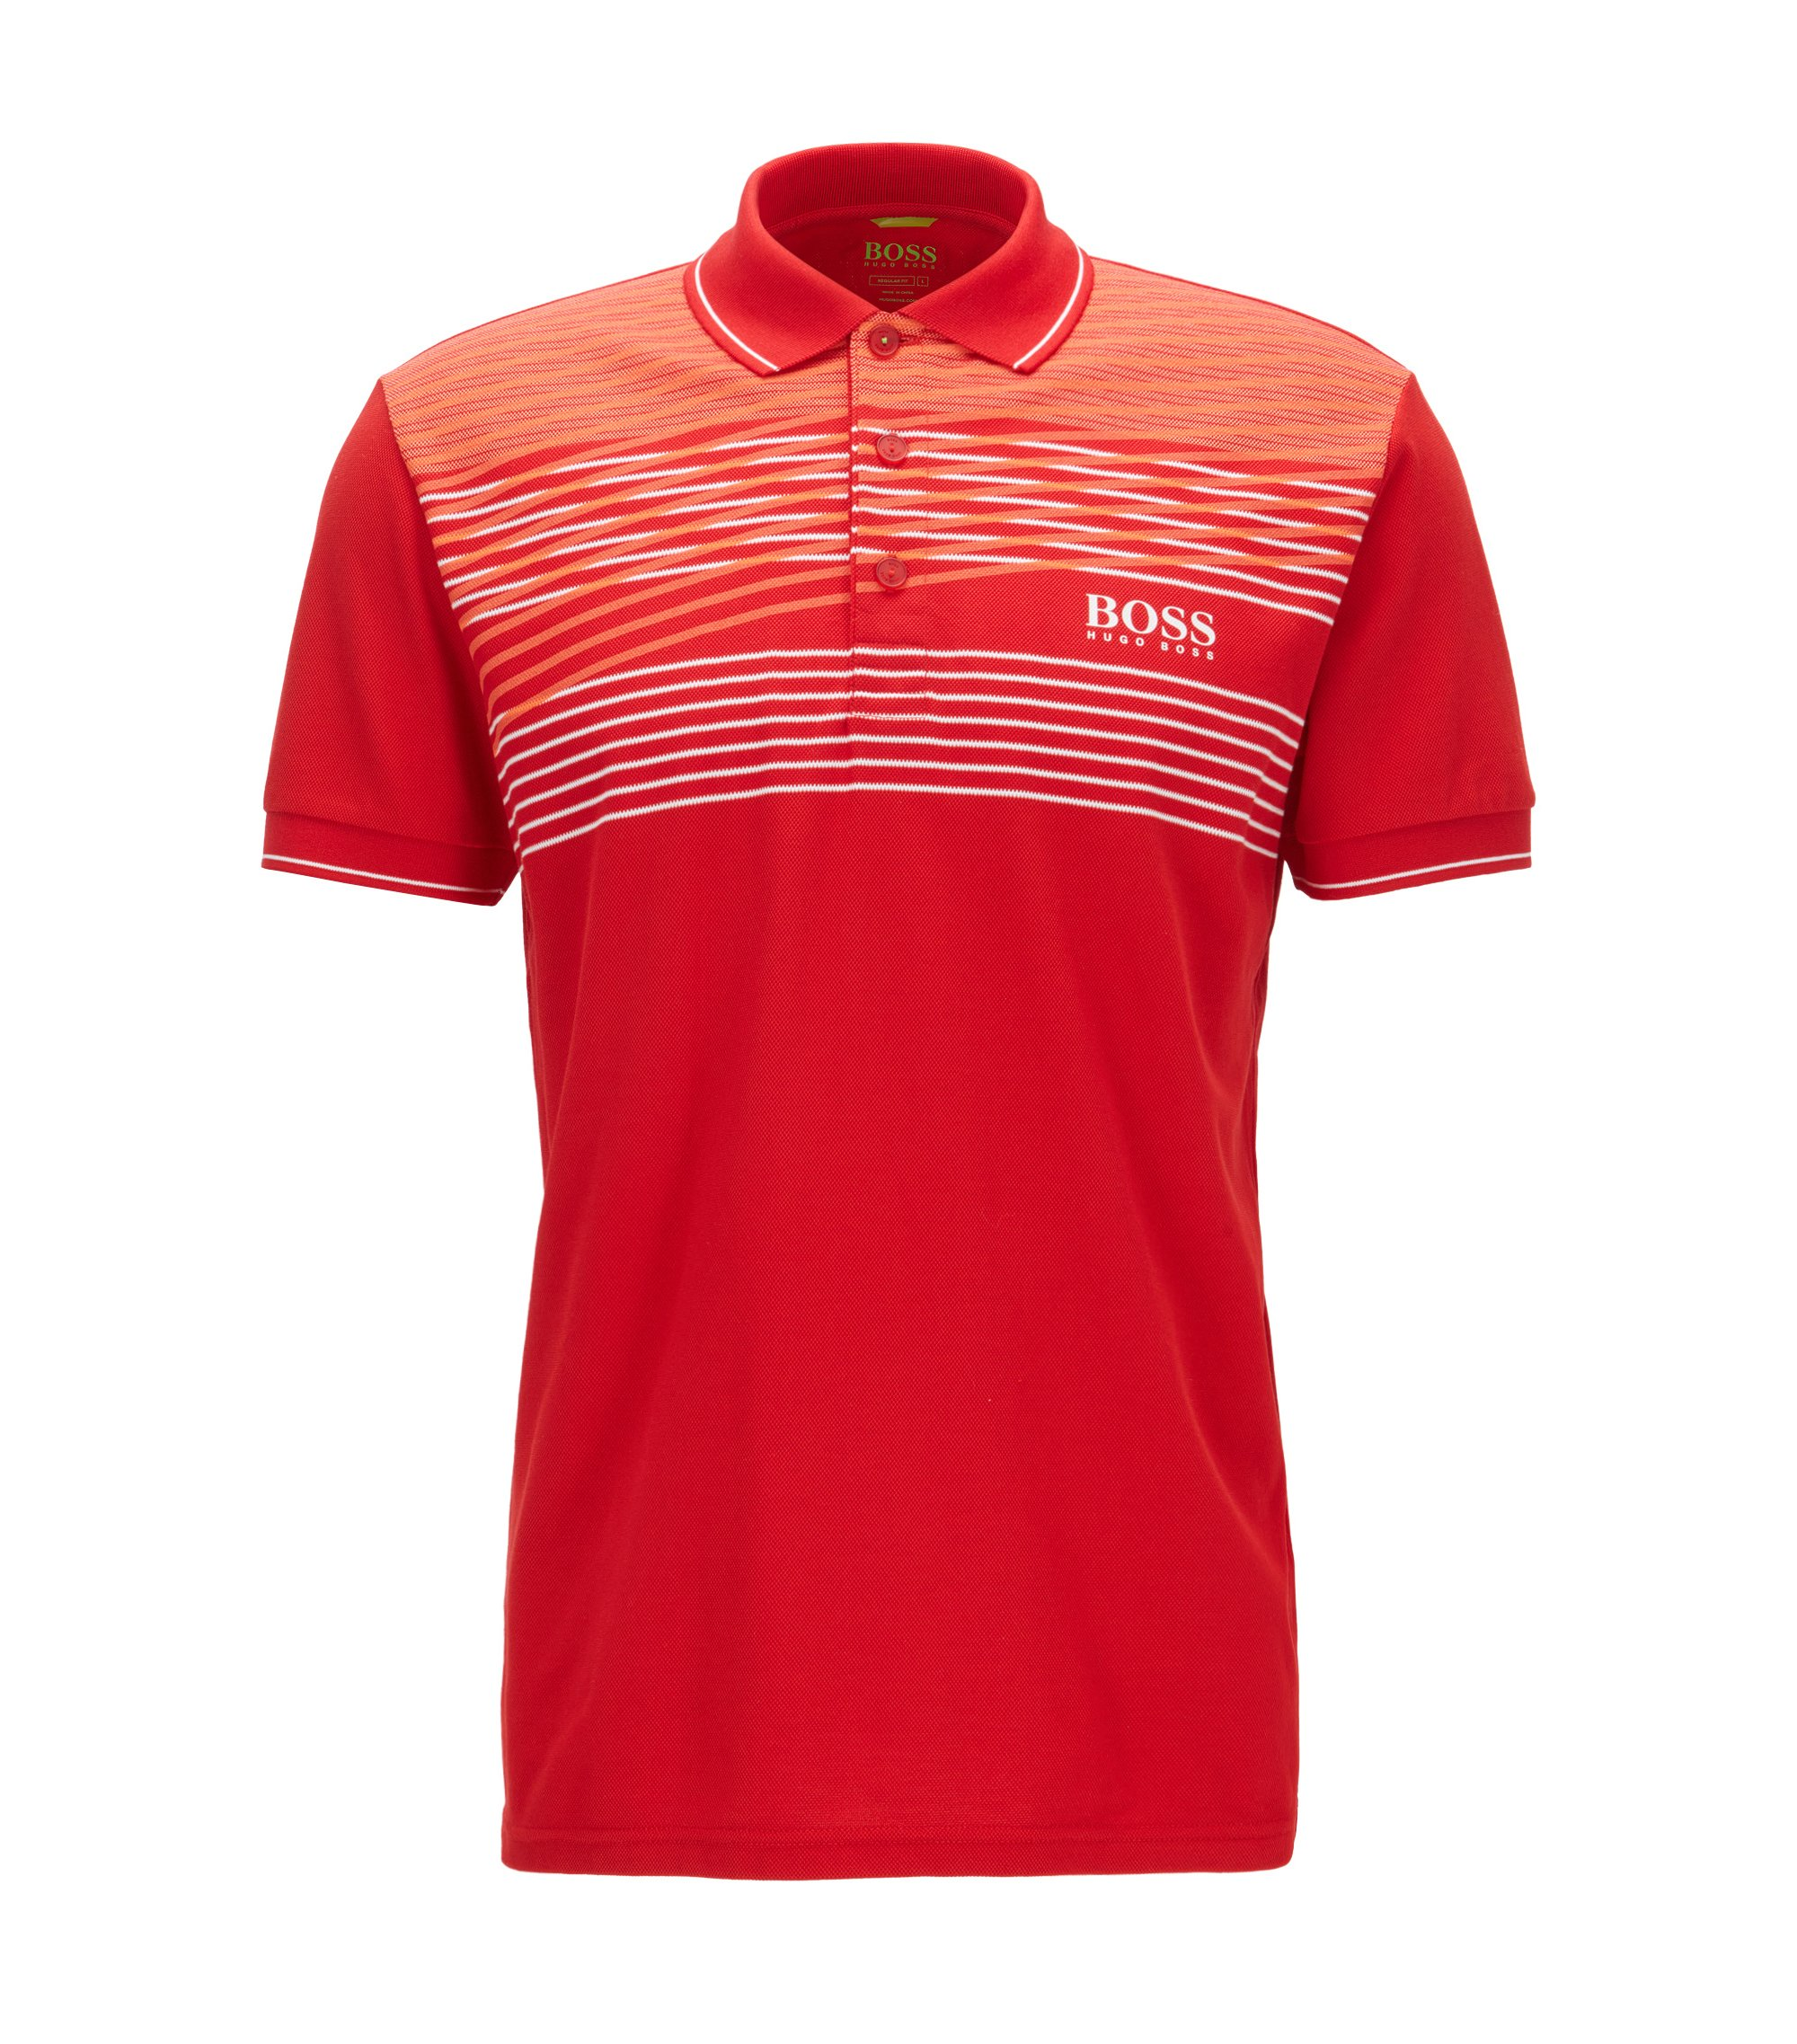 Cotton Blend Polo Shirt, Slim Fit  | Paddy Pro, Red